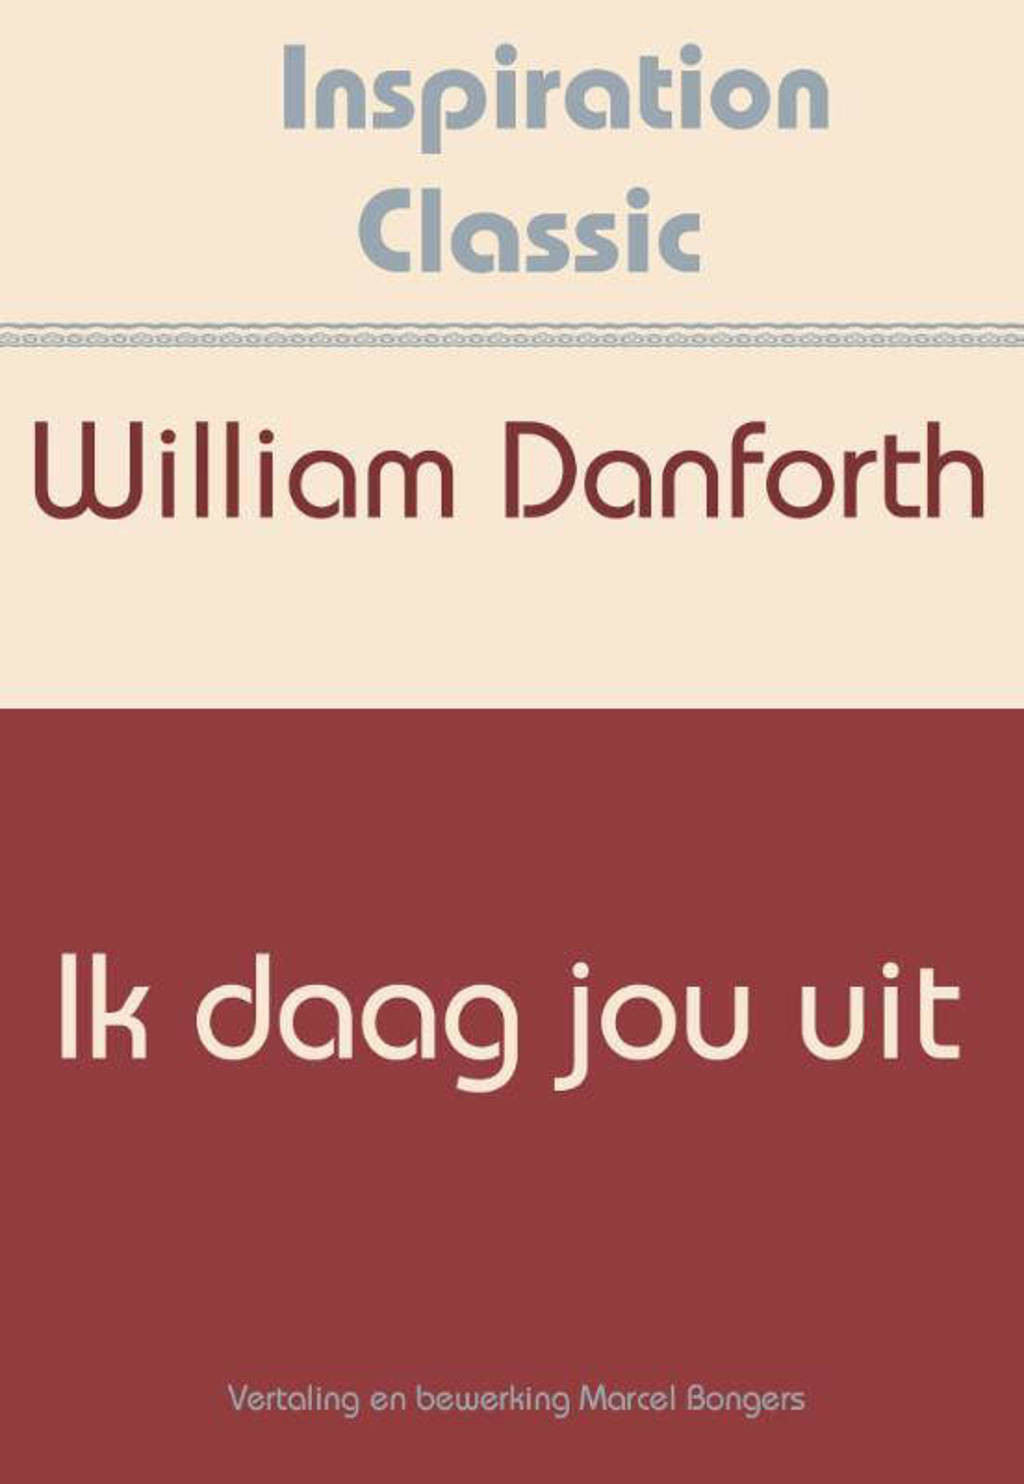 Inspiration Classic: Ik daag jou uit - William H. Danforth